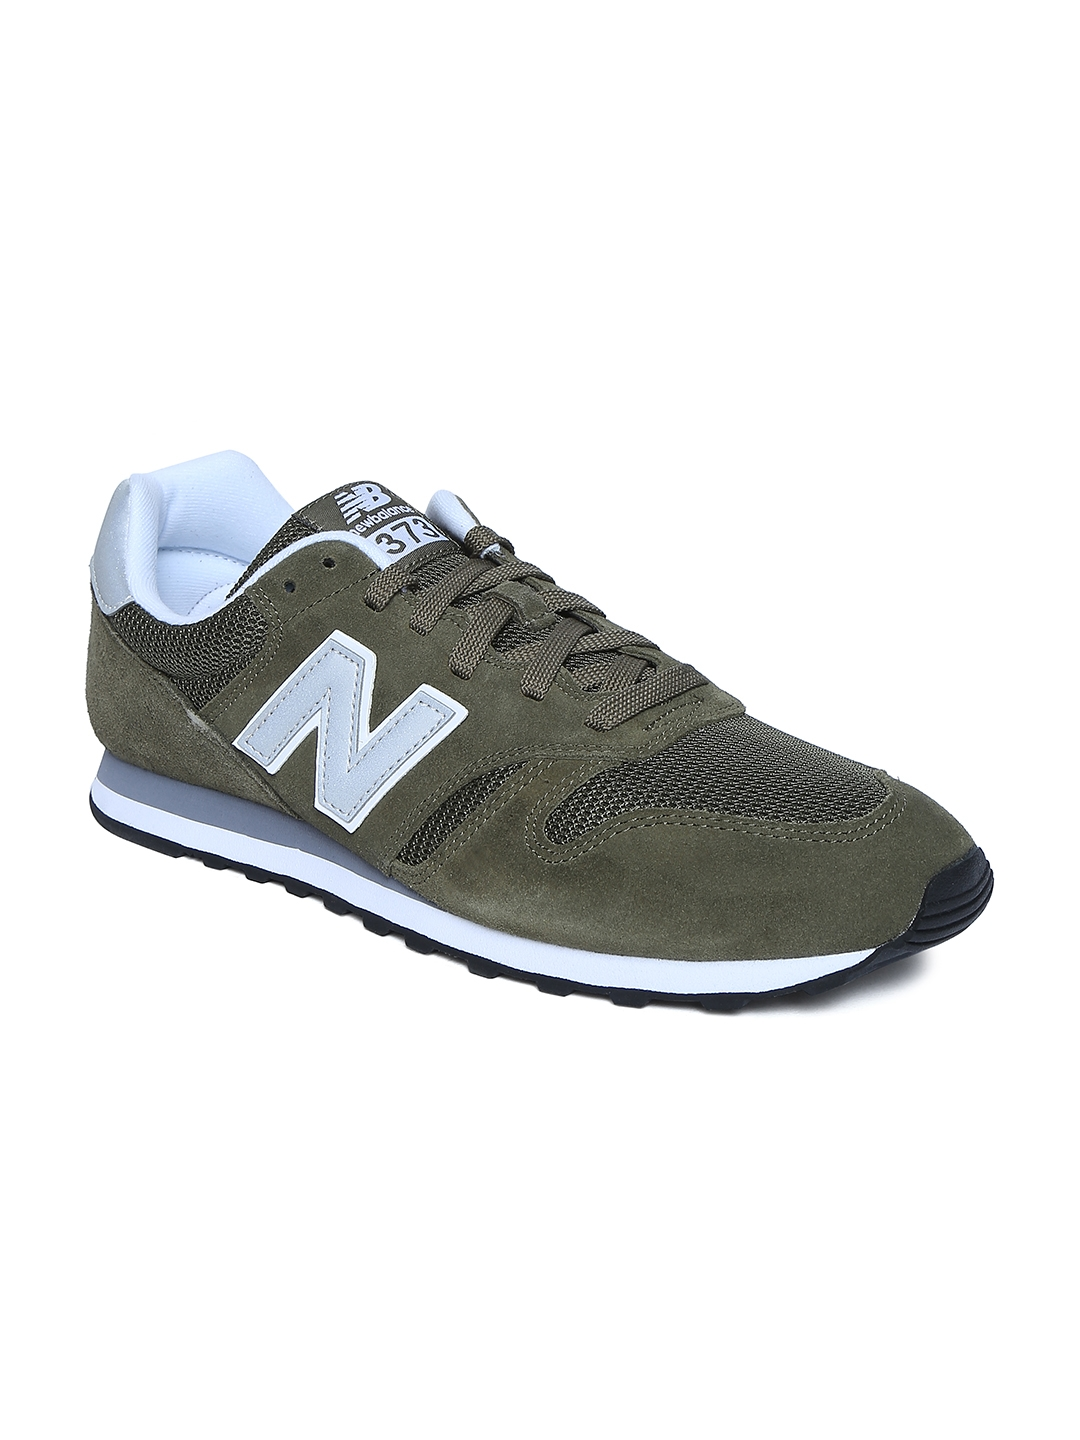 545561a16b816 Buy New Balance Men Olive Green 373 Sneakers - Casual Shoes for Men ...